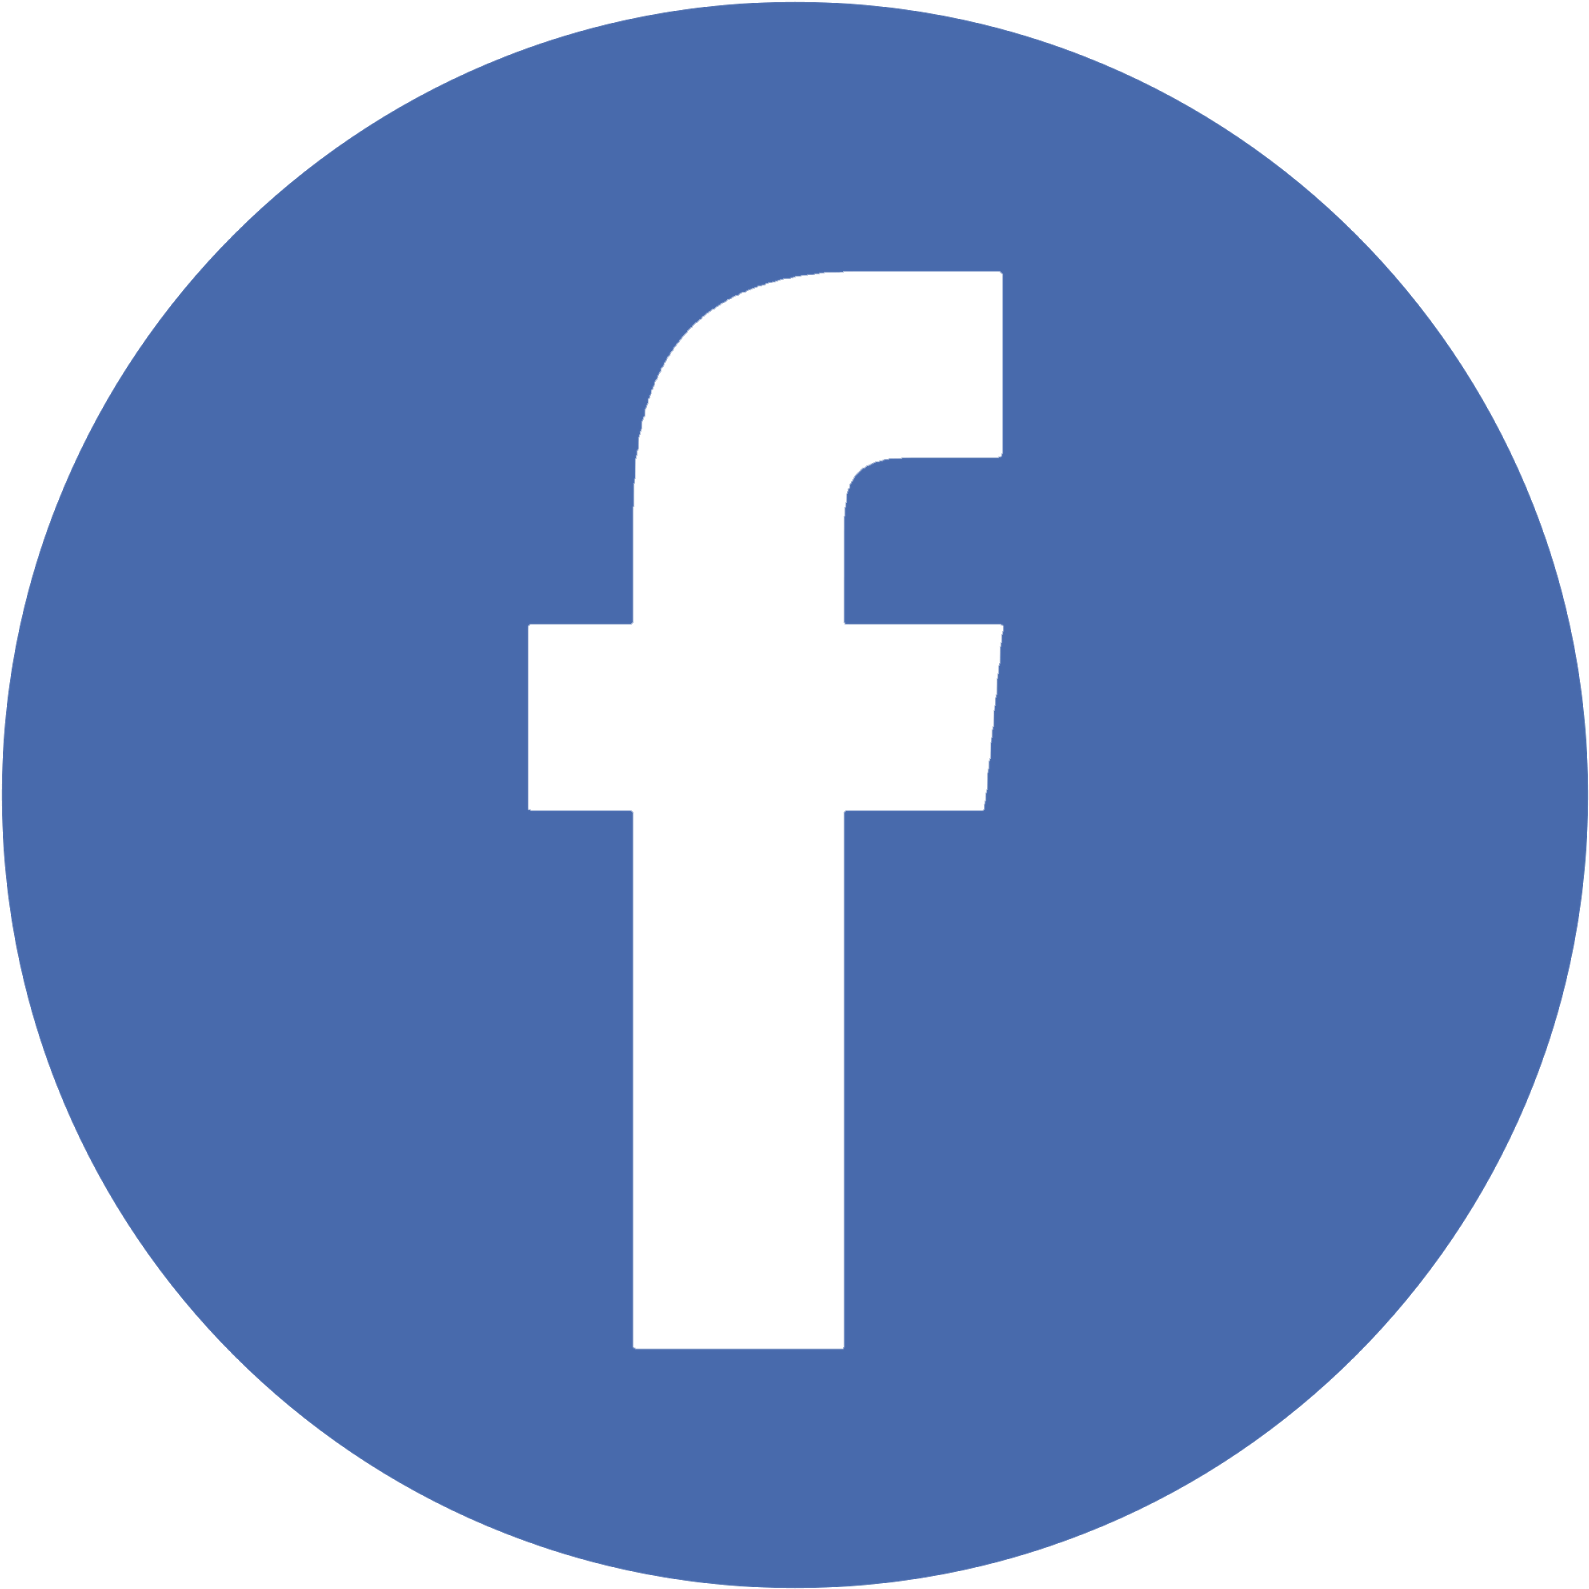 Facebook Twitter Instagram Pinterest - Facebook Logo In Circle Without Background (1600x1600), Png Download